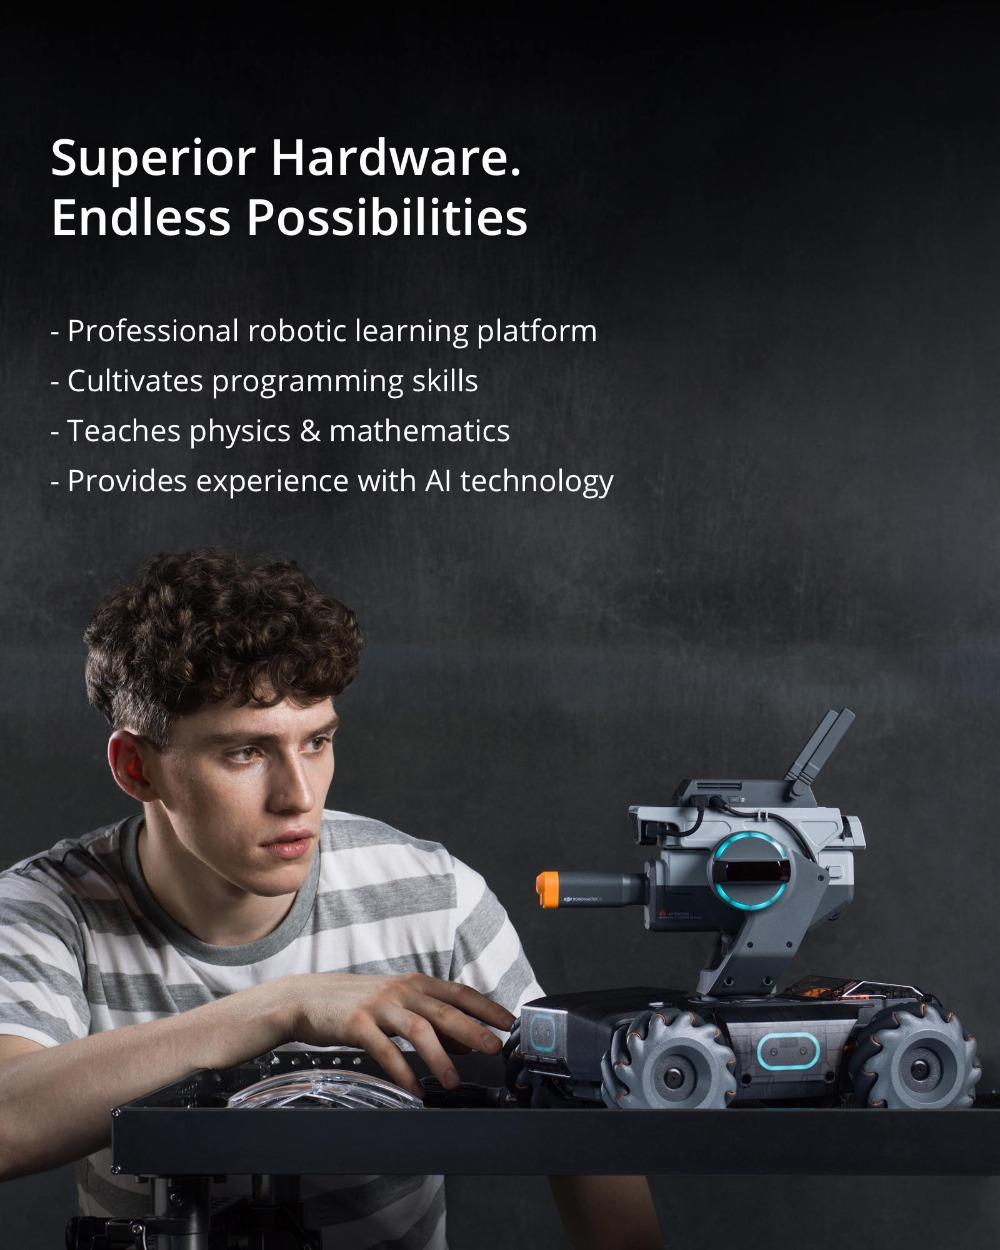 DJI Robomaster S1, Advanced Educational Robot